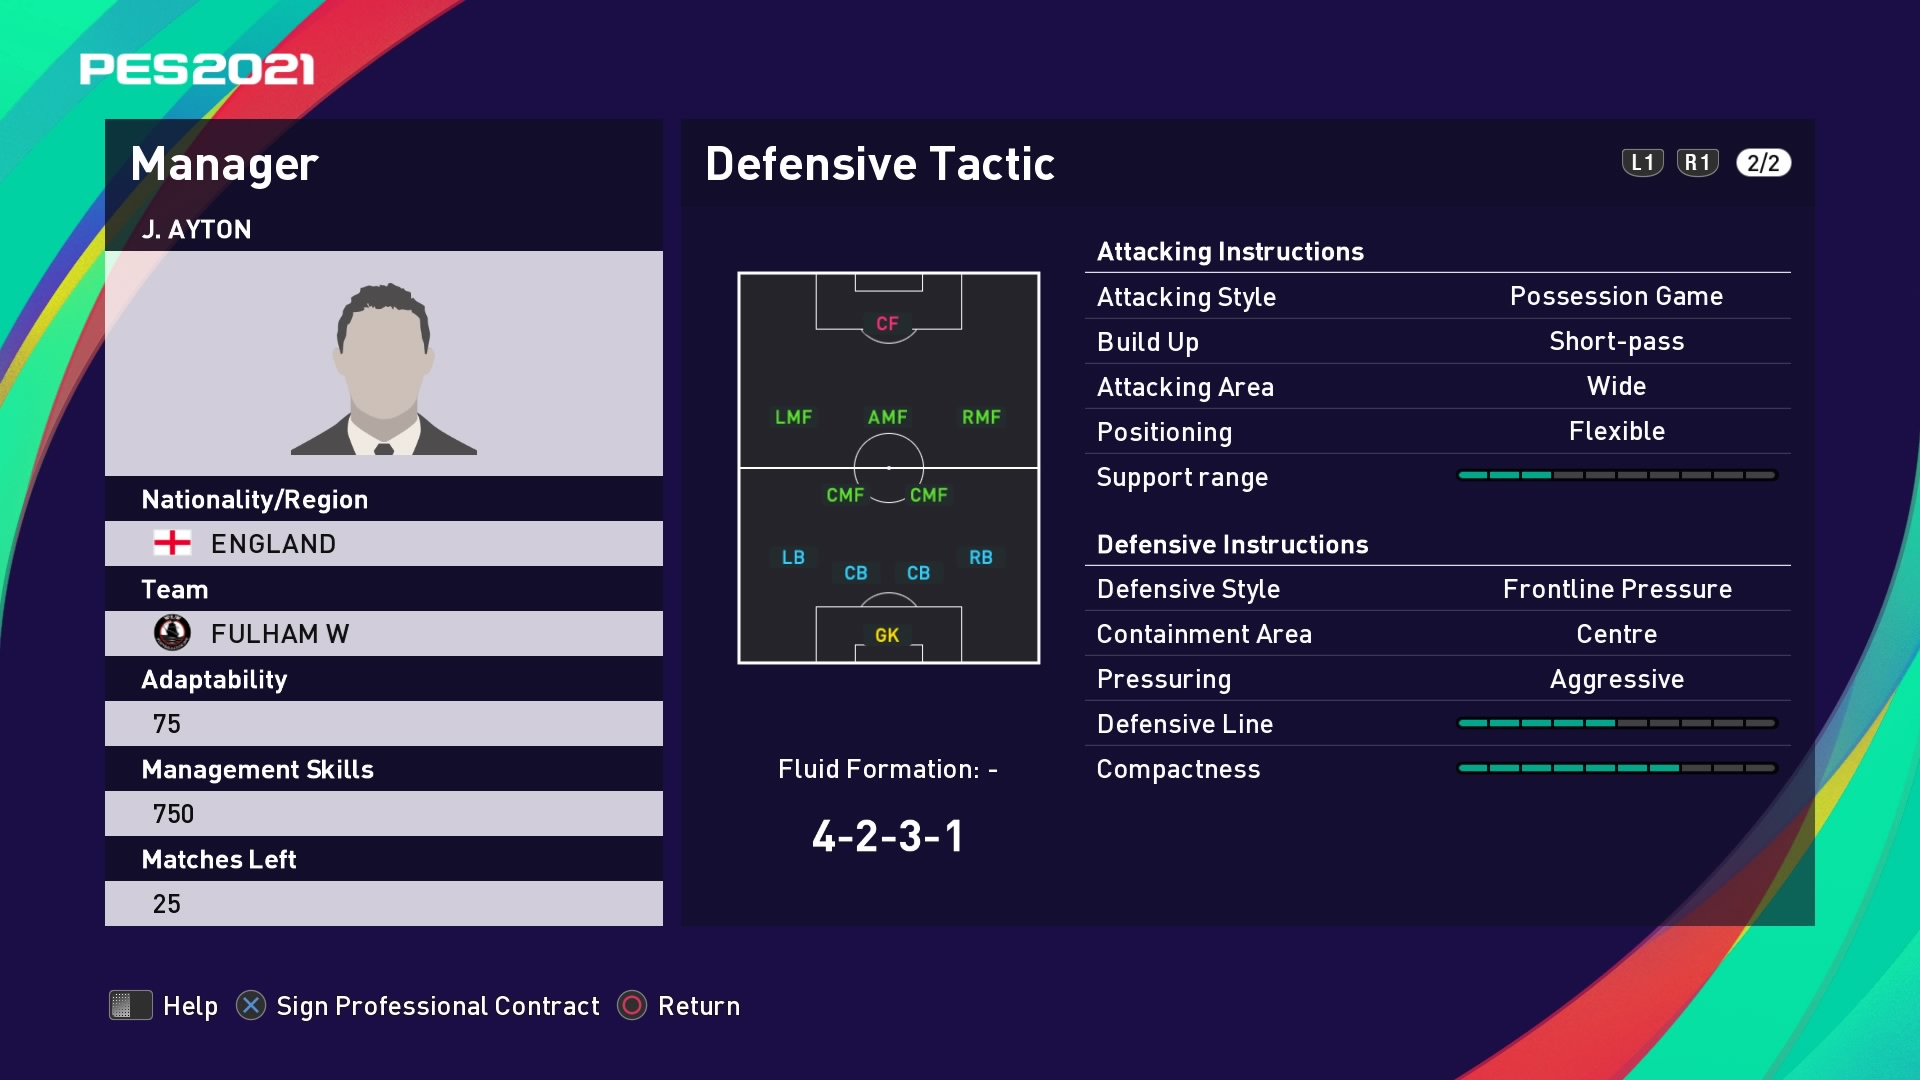 J. Ayton (Scott Parker) Defensive Tactic in PES 2021 myClub